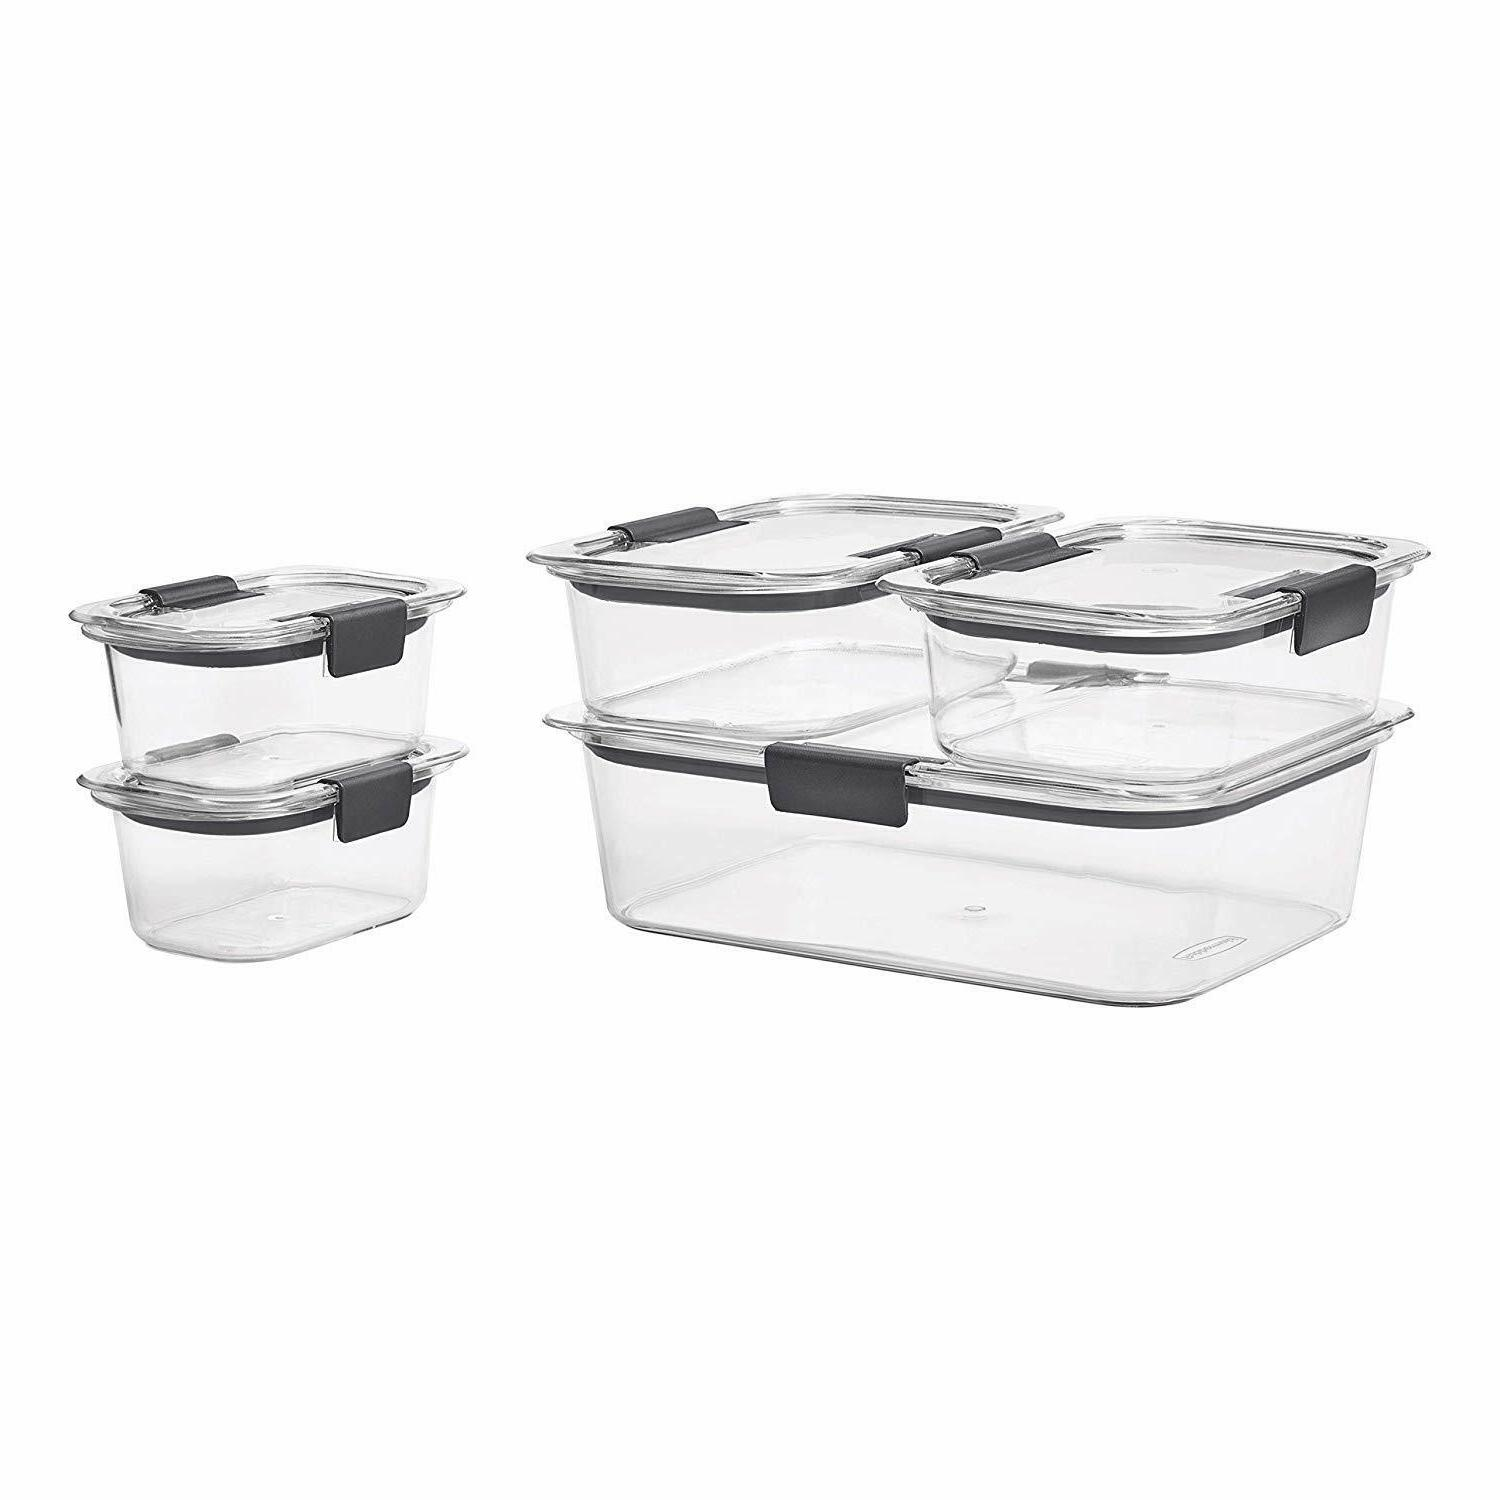 Rubbermaid Brilliance Food Storage Containers with Lids